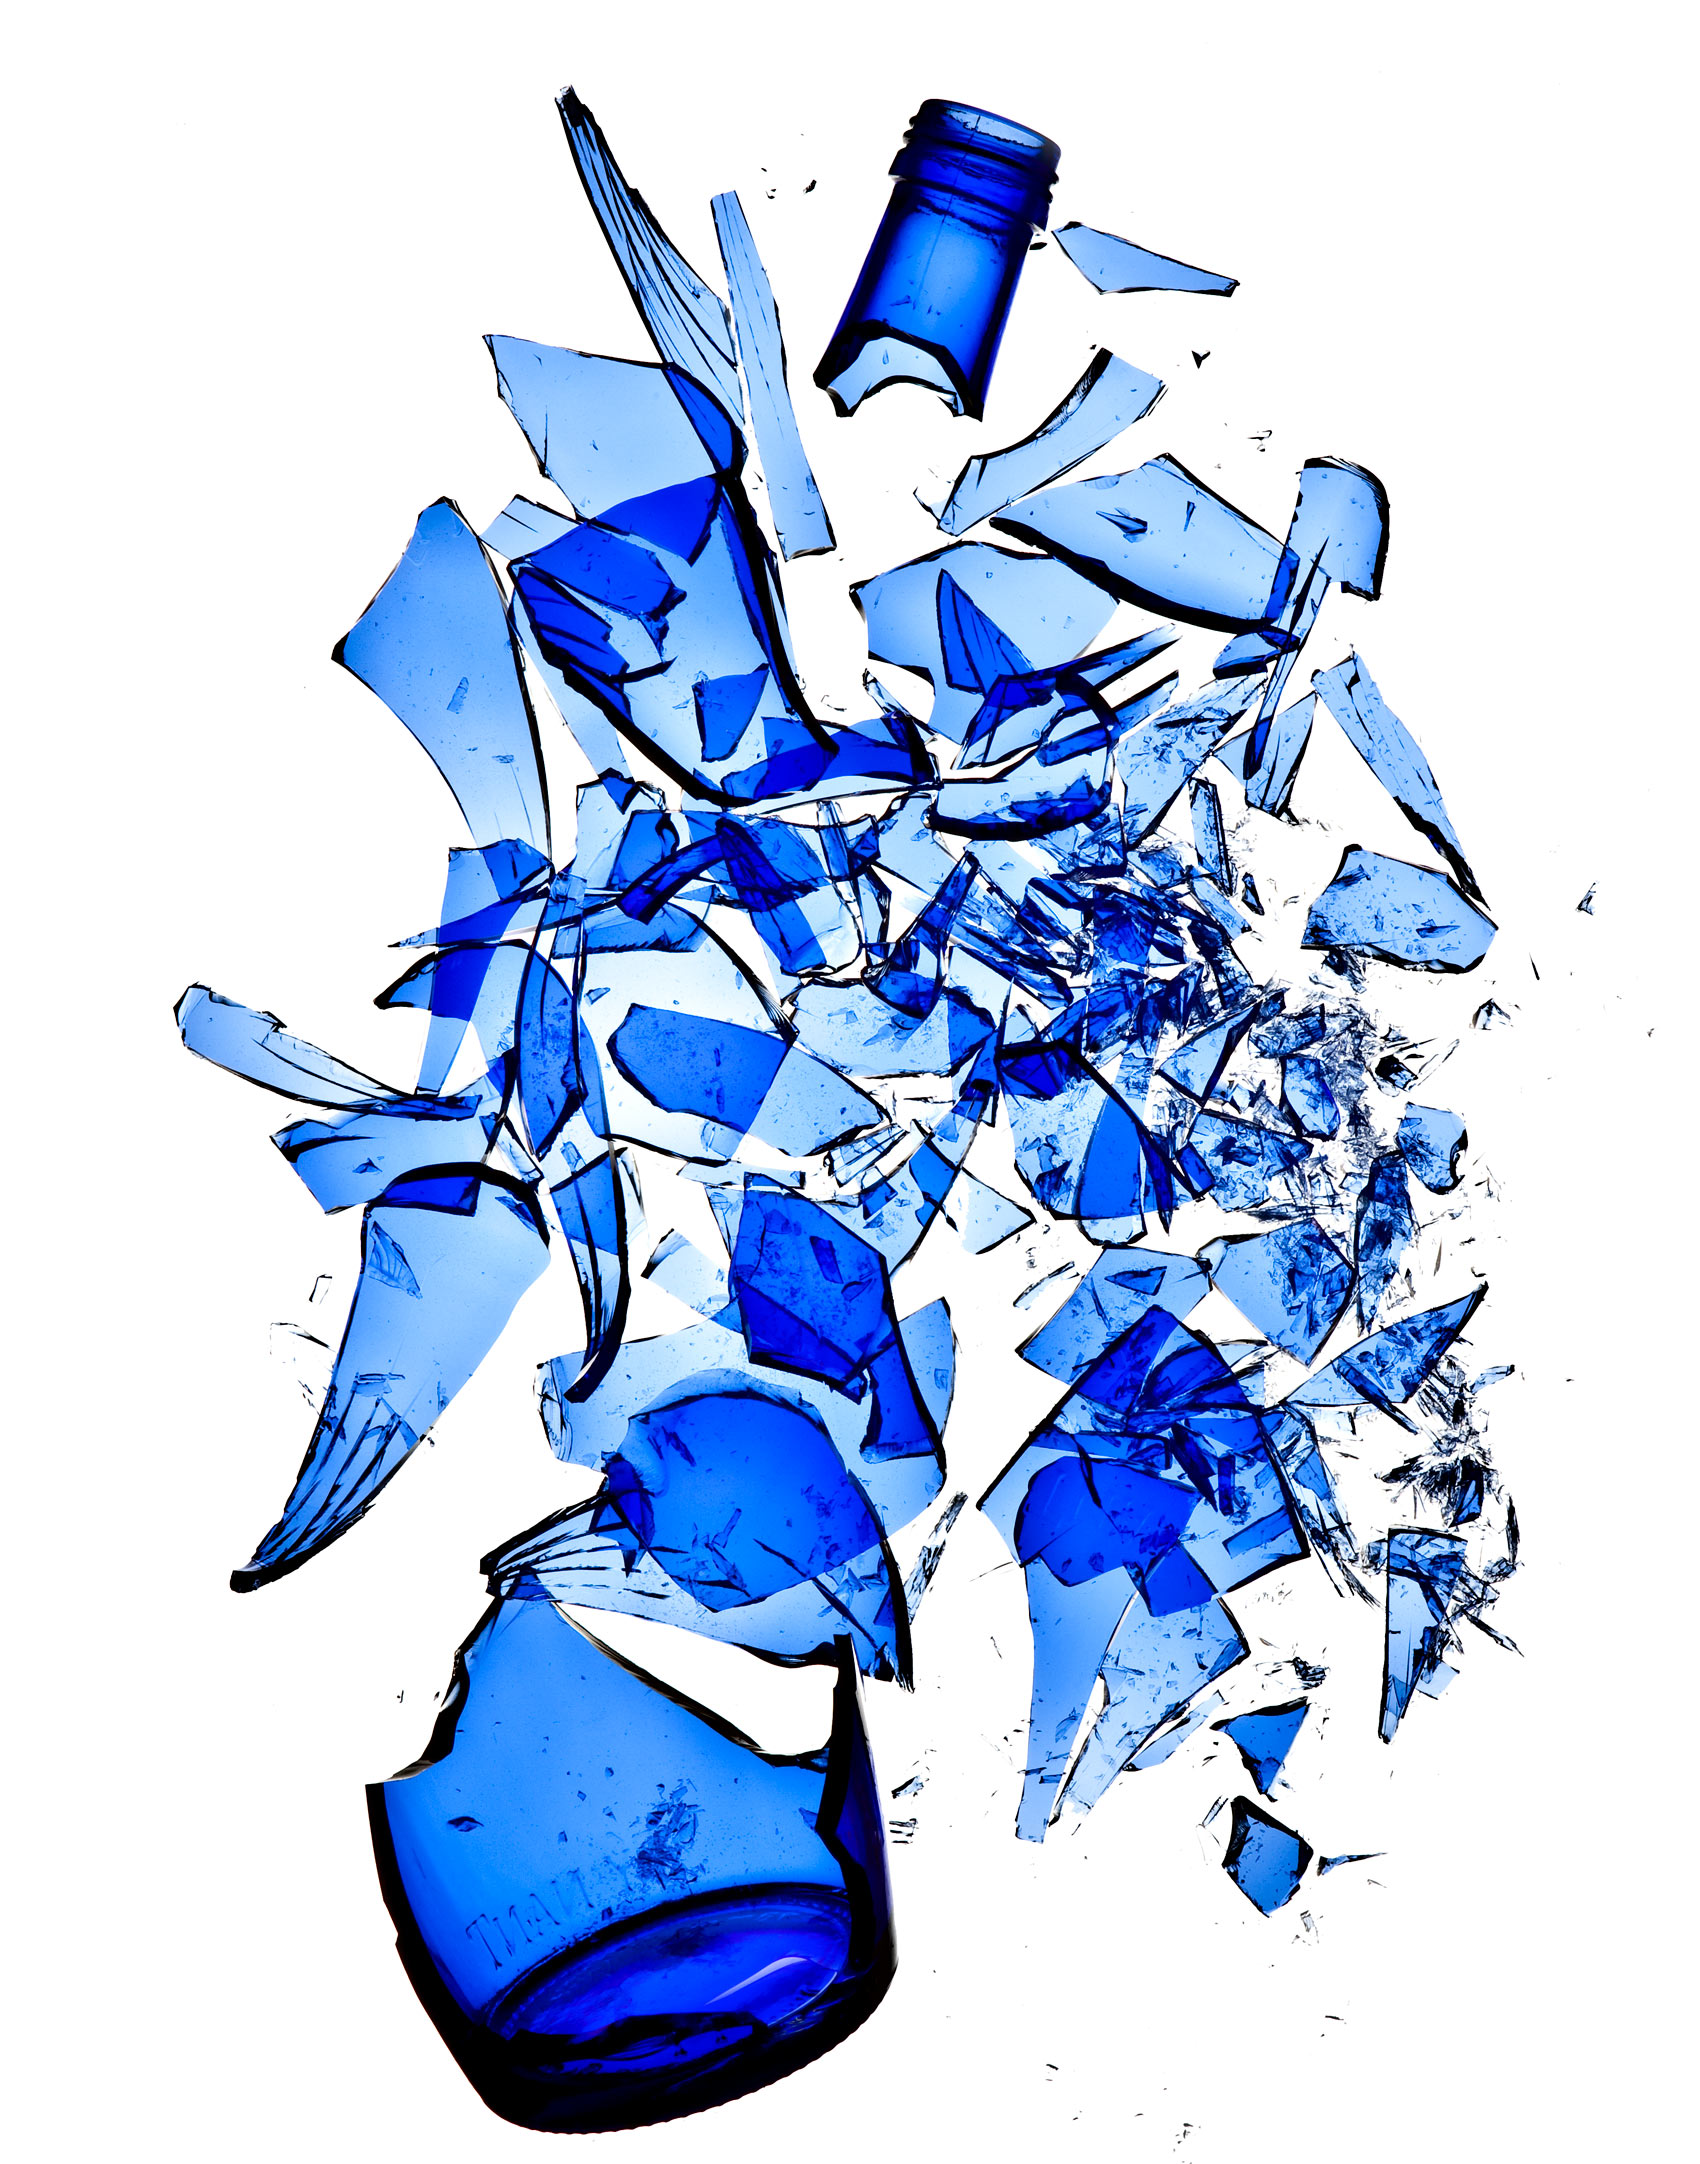 Broken Blue Bottle